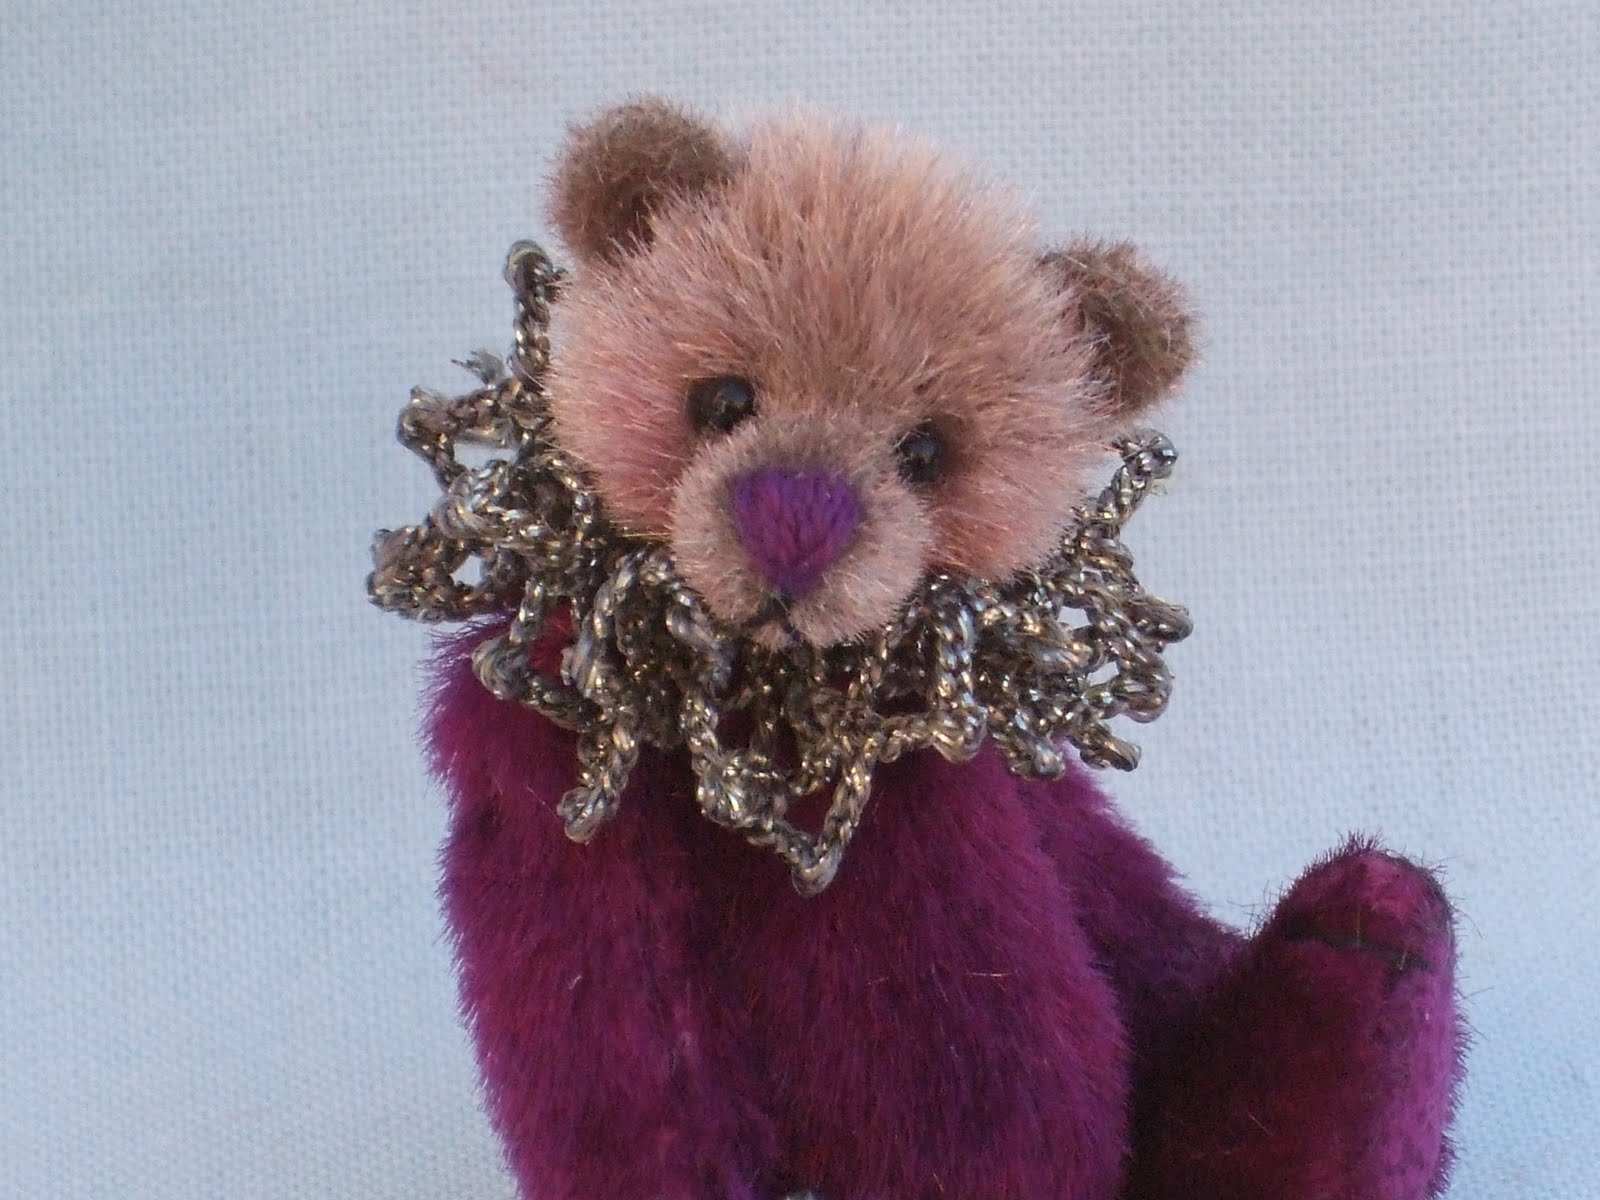 Louise Peers December 2010 Wrist Bear Pink Lavinia Is A 2 Inch Made From Vintage Long Pile Velvet With Onyx Eyes She Wears Silver Metallic Ruffle And Her Own Crystal Bauble On